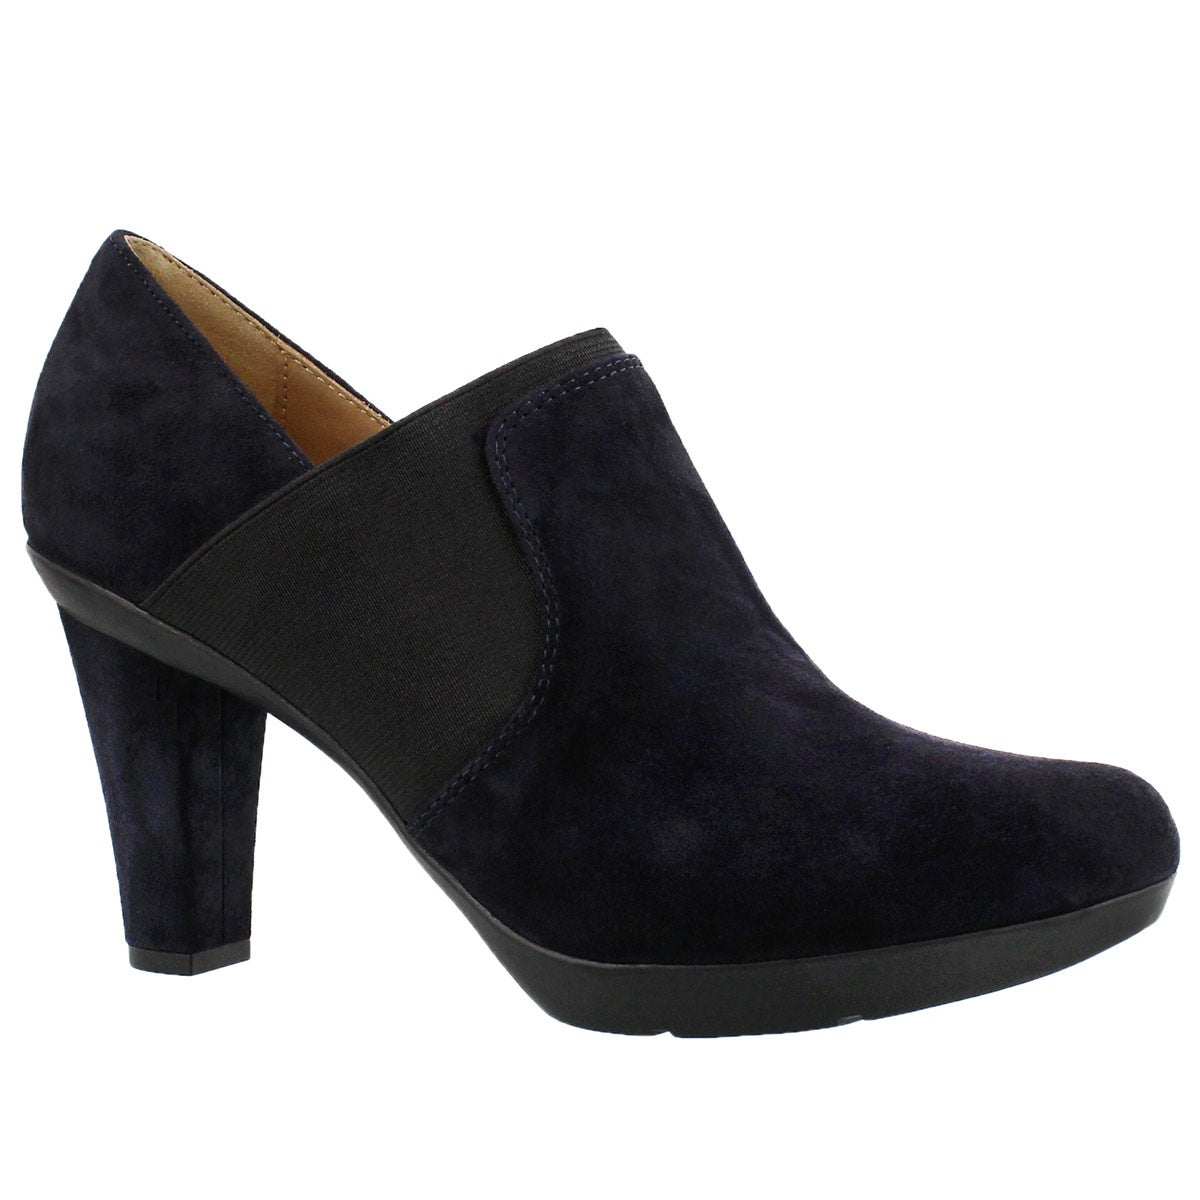 Lds Inspiration dk nvy suede dress heel